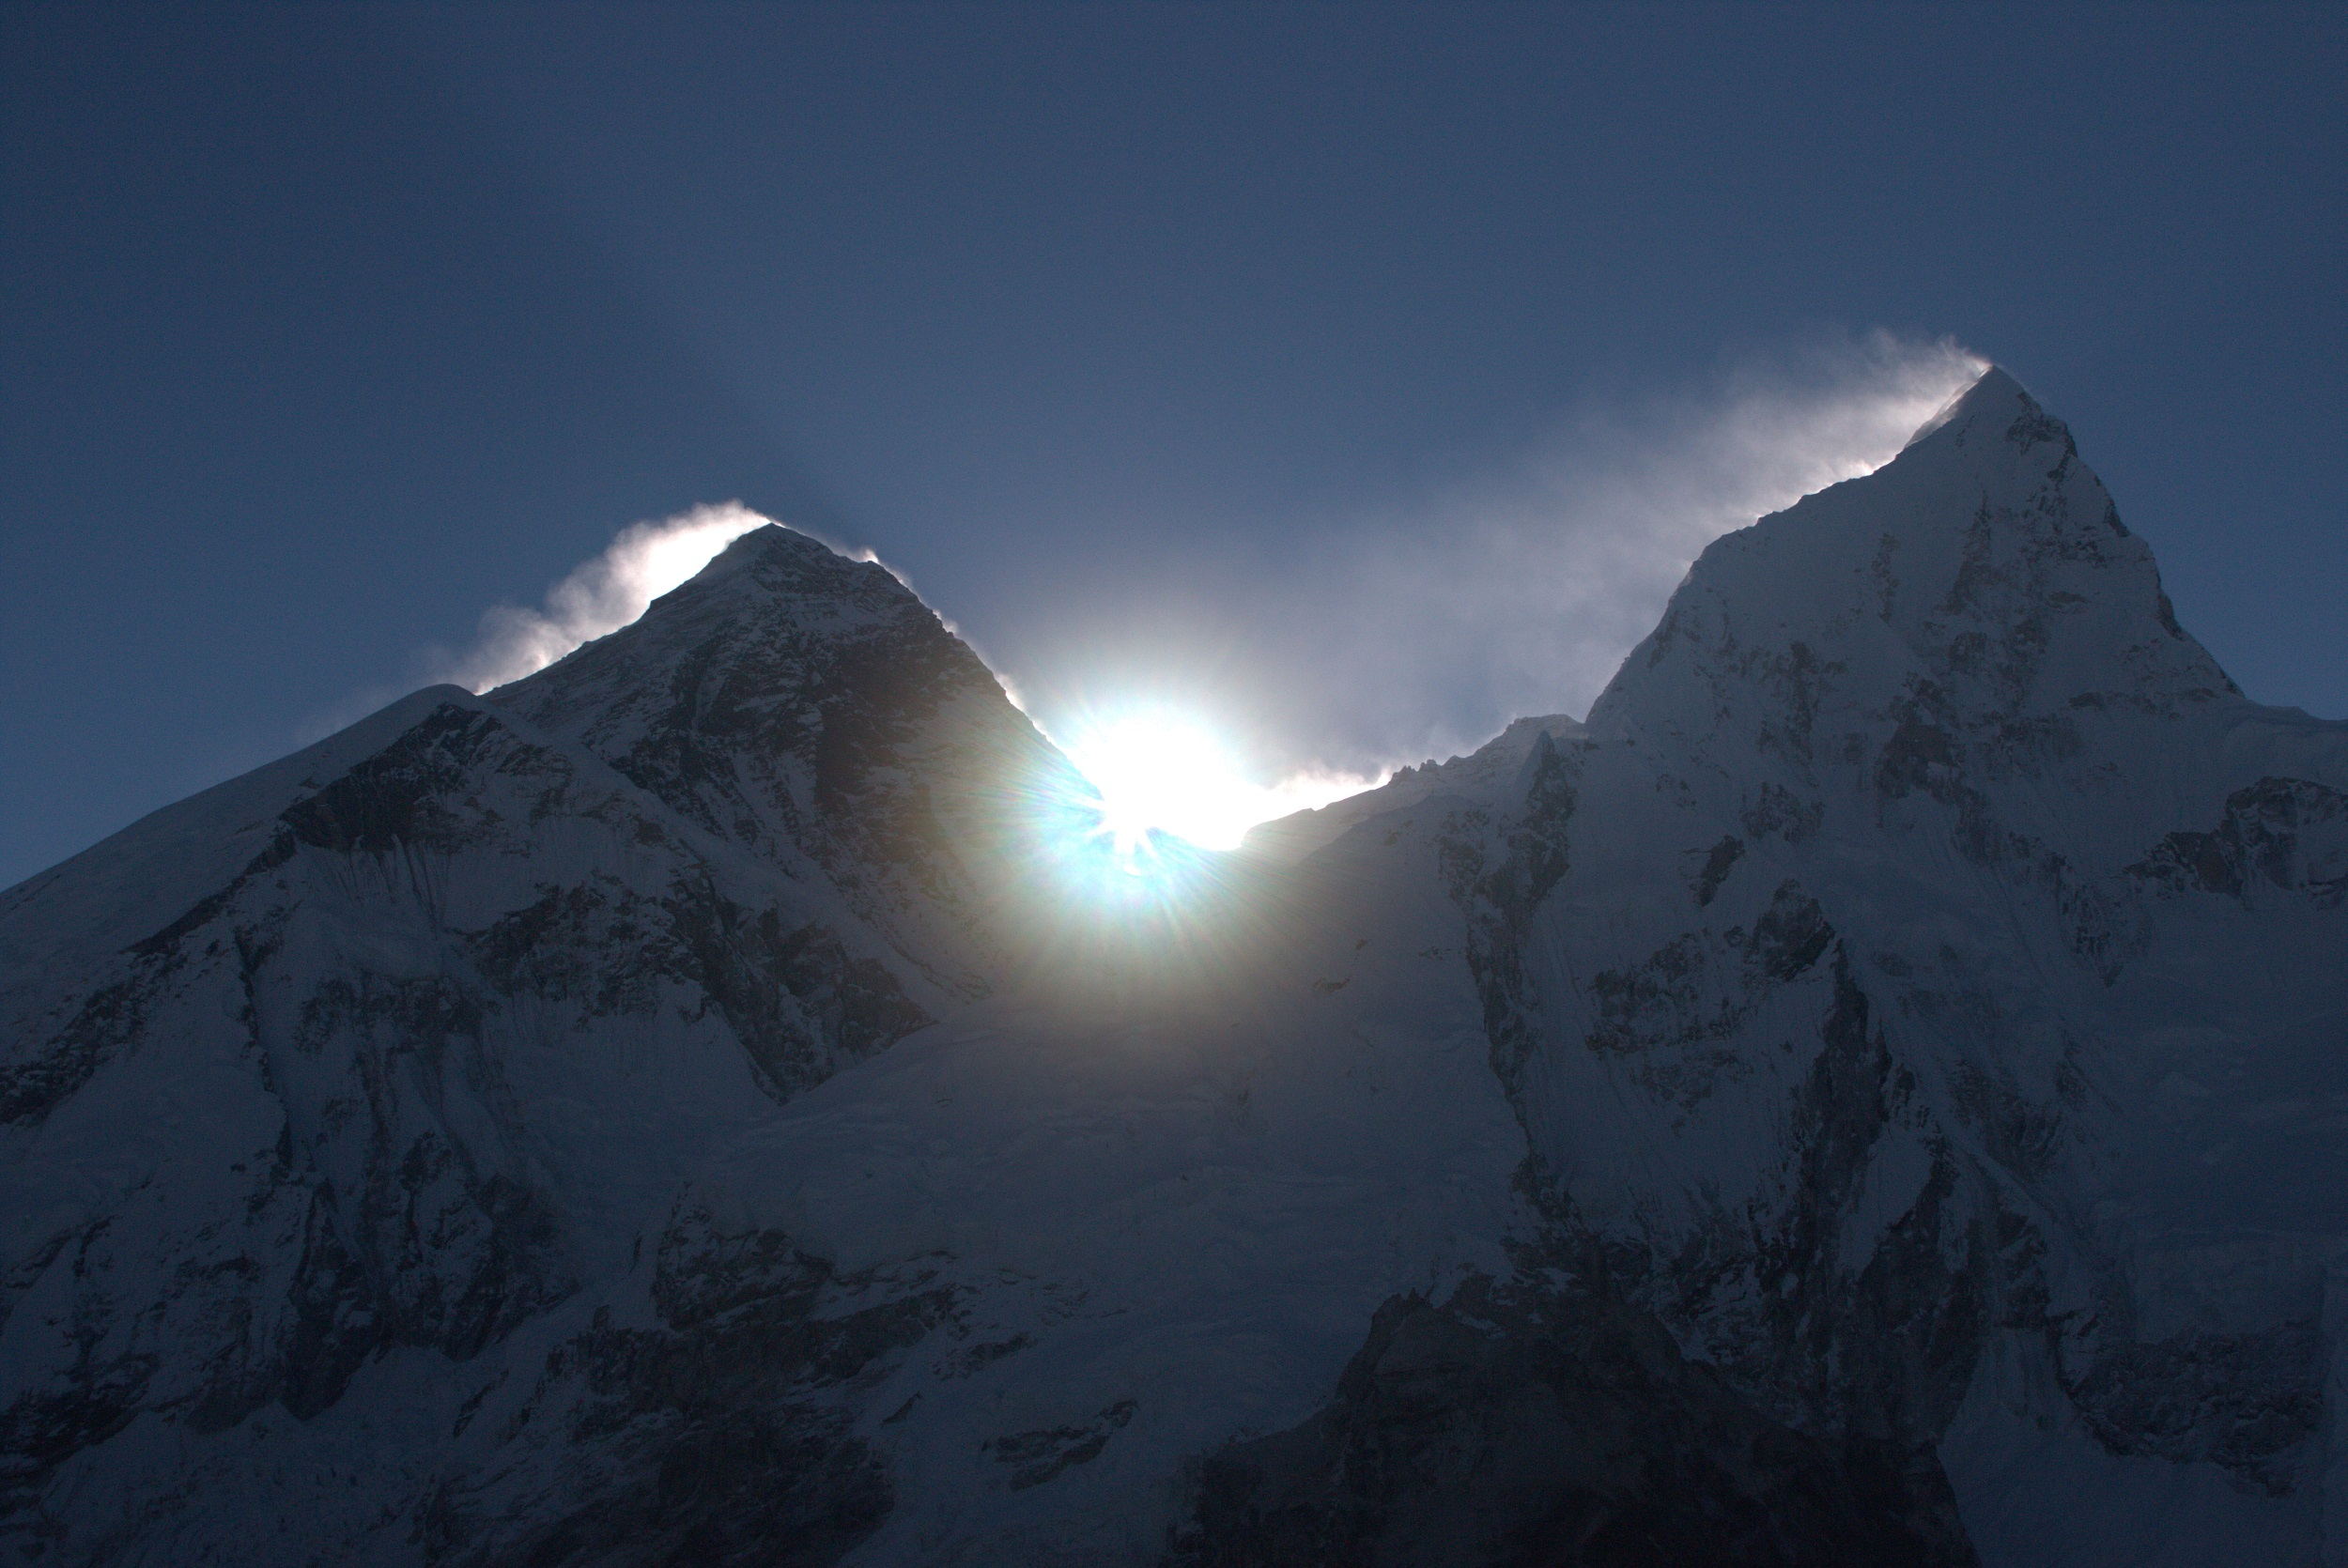 Sunrise between Everest and Nupse